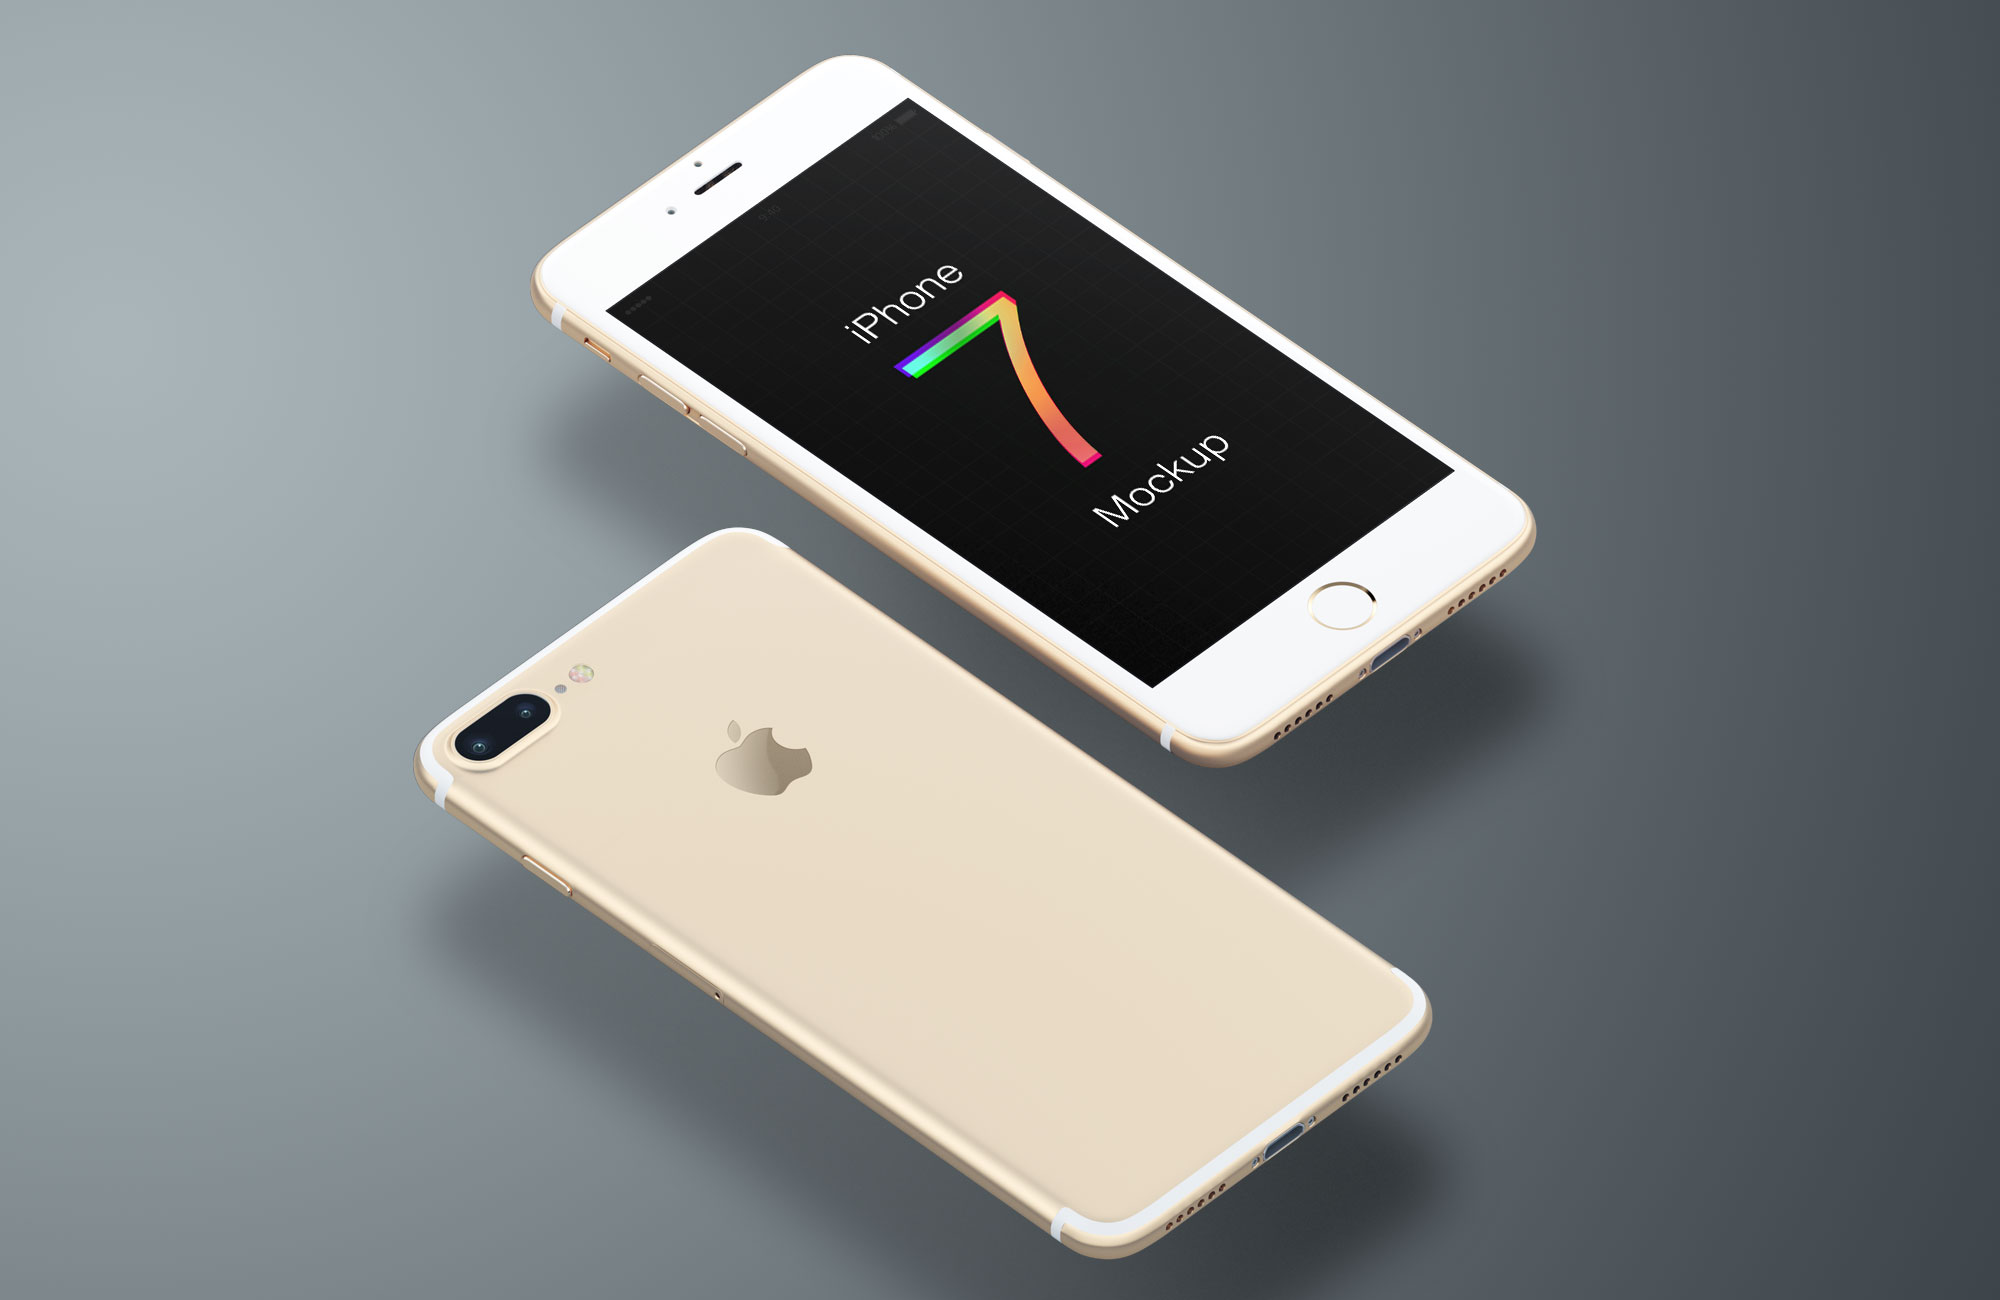 Free iPhone 7 mockup in five colors: gold, silver, gray, matte white & black.